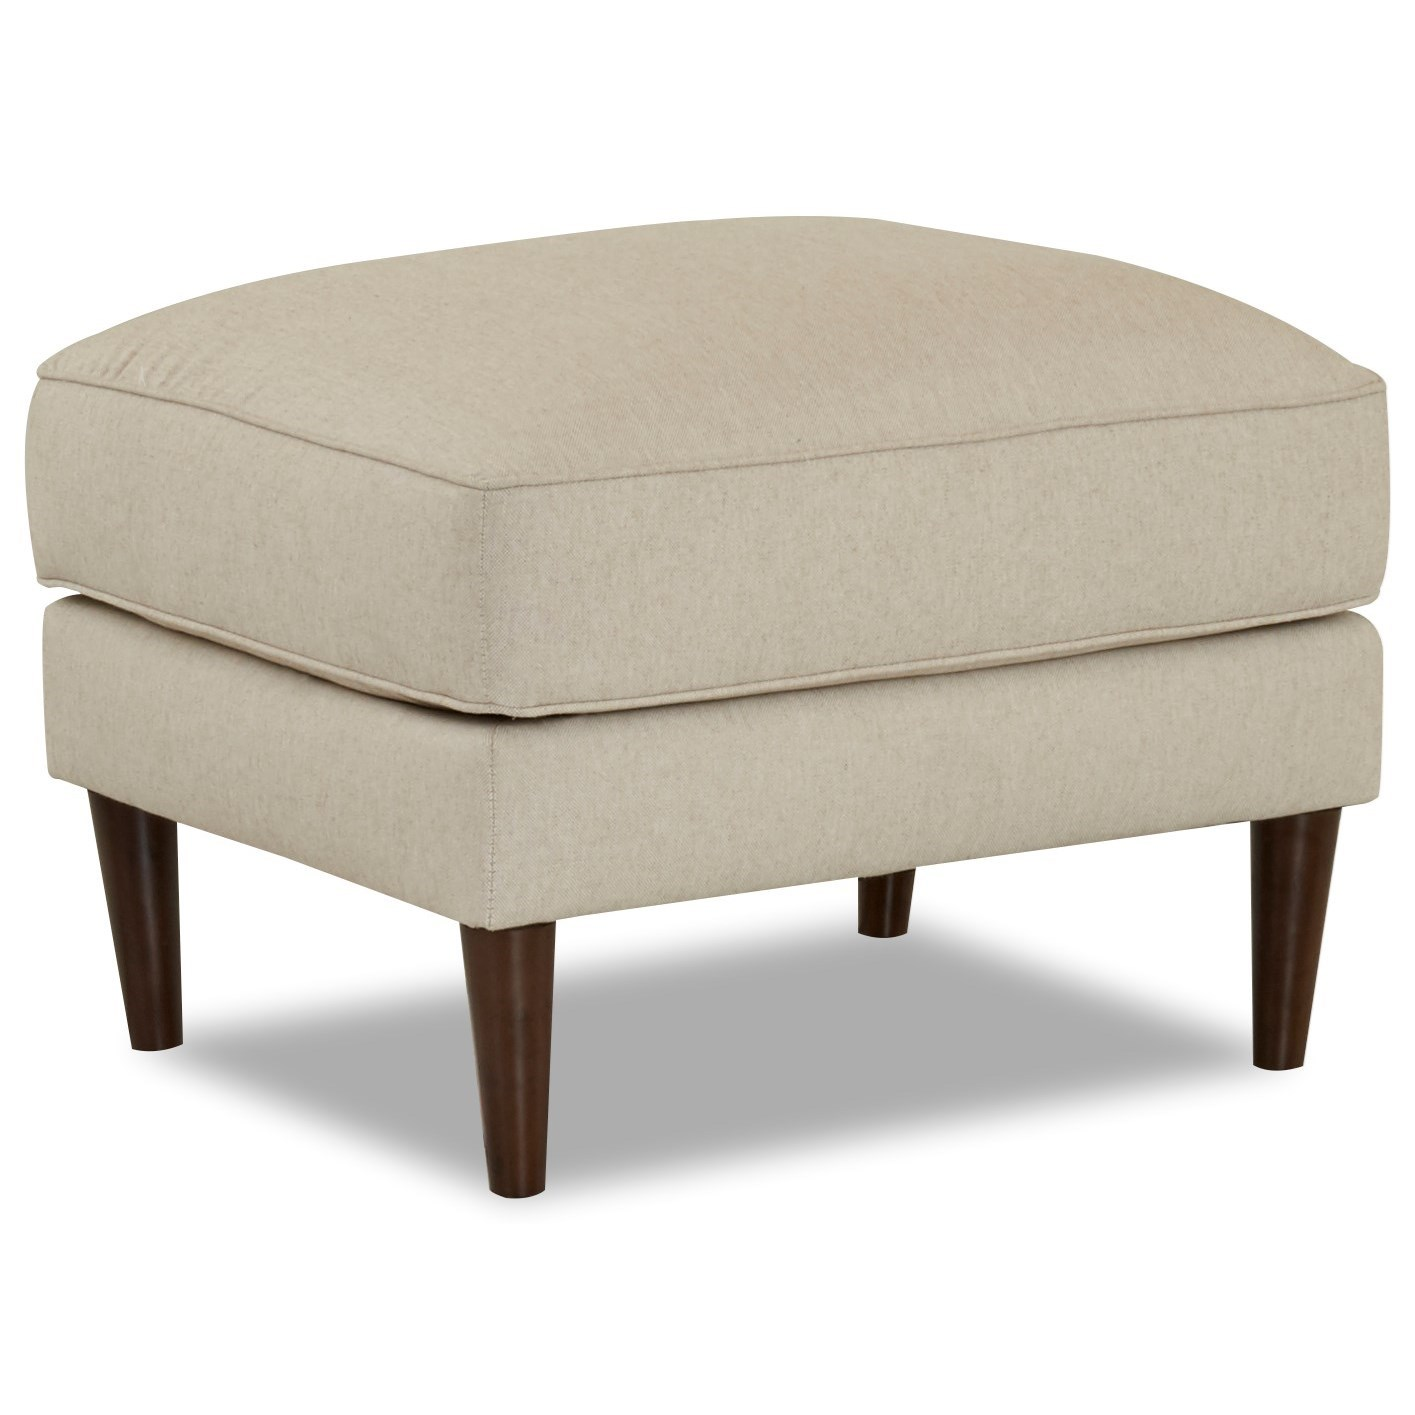 Ottoman with Round Tapered Legs